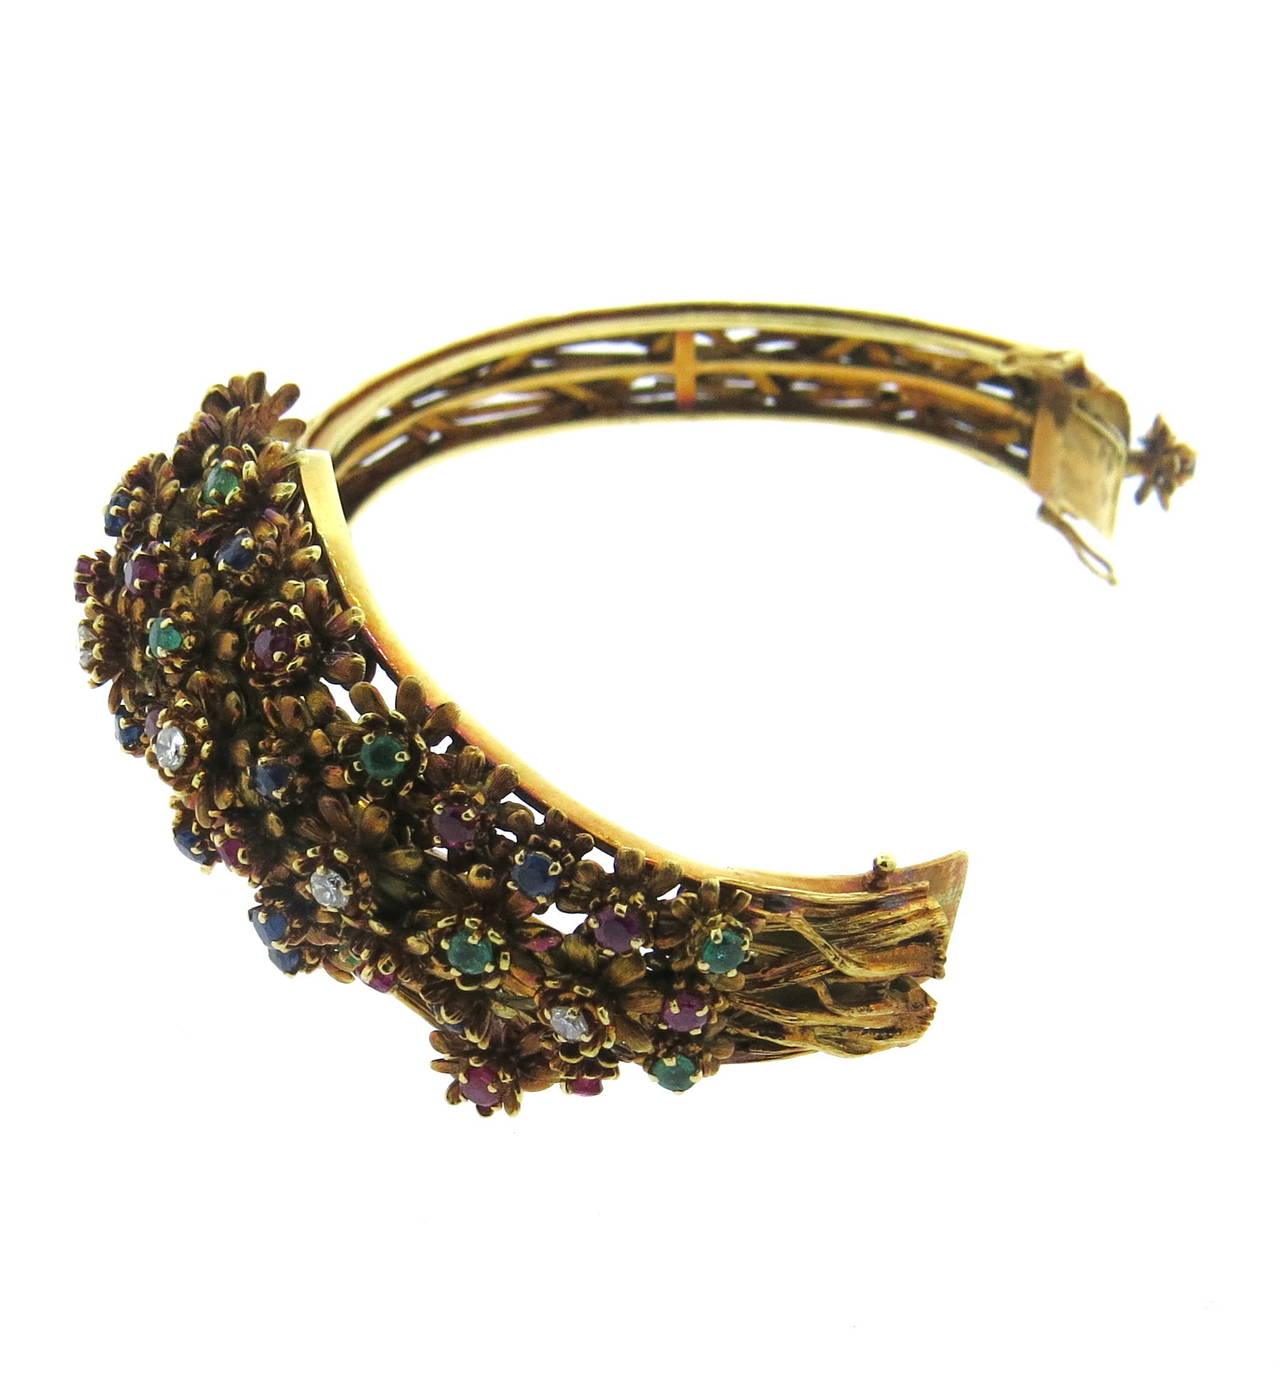 Zolotas Gold Diamond Emerald Sapphire Ruby Flower Bangle Bracelet In Excellent Condition For Sale In Lahaska, PA